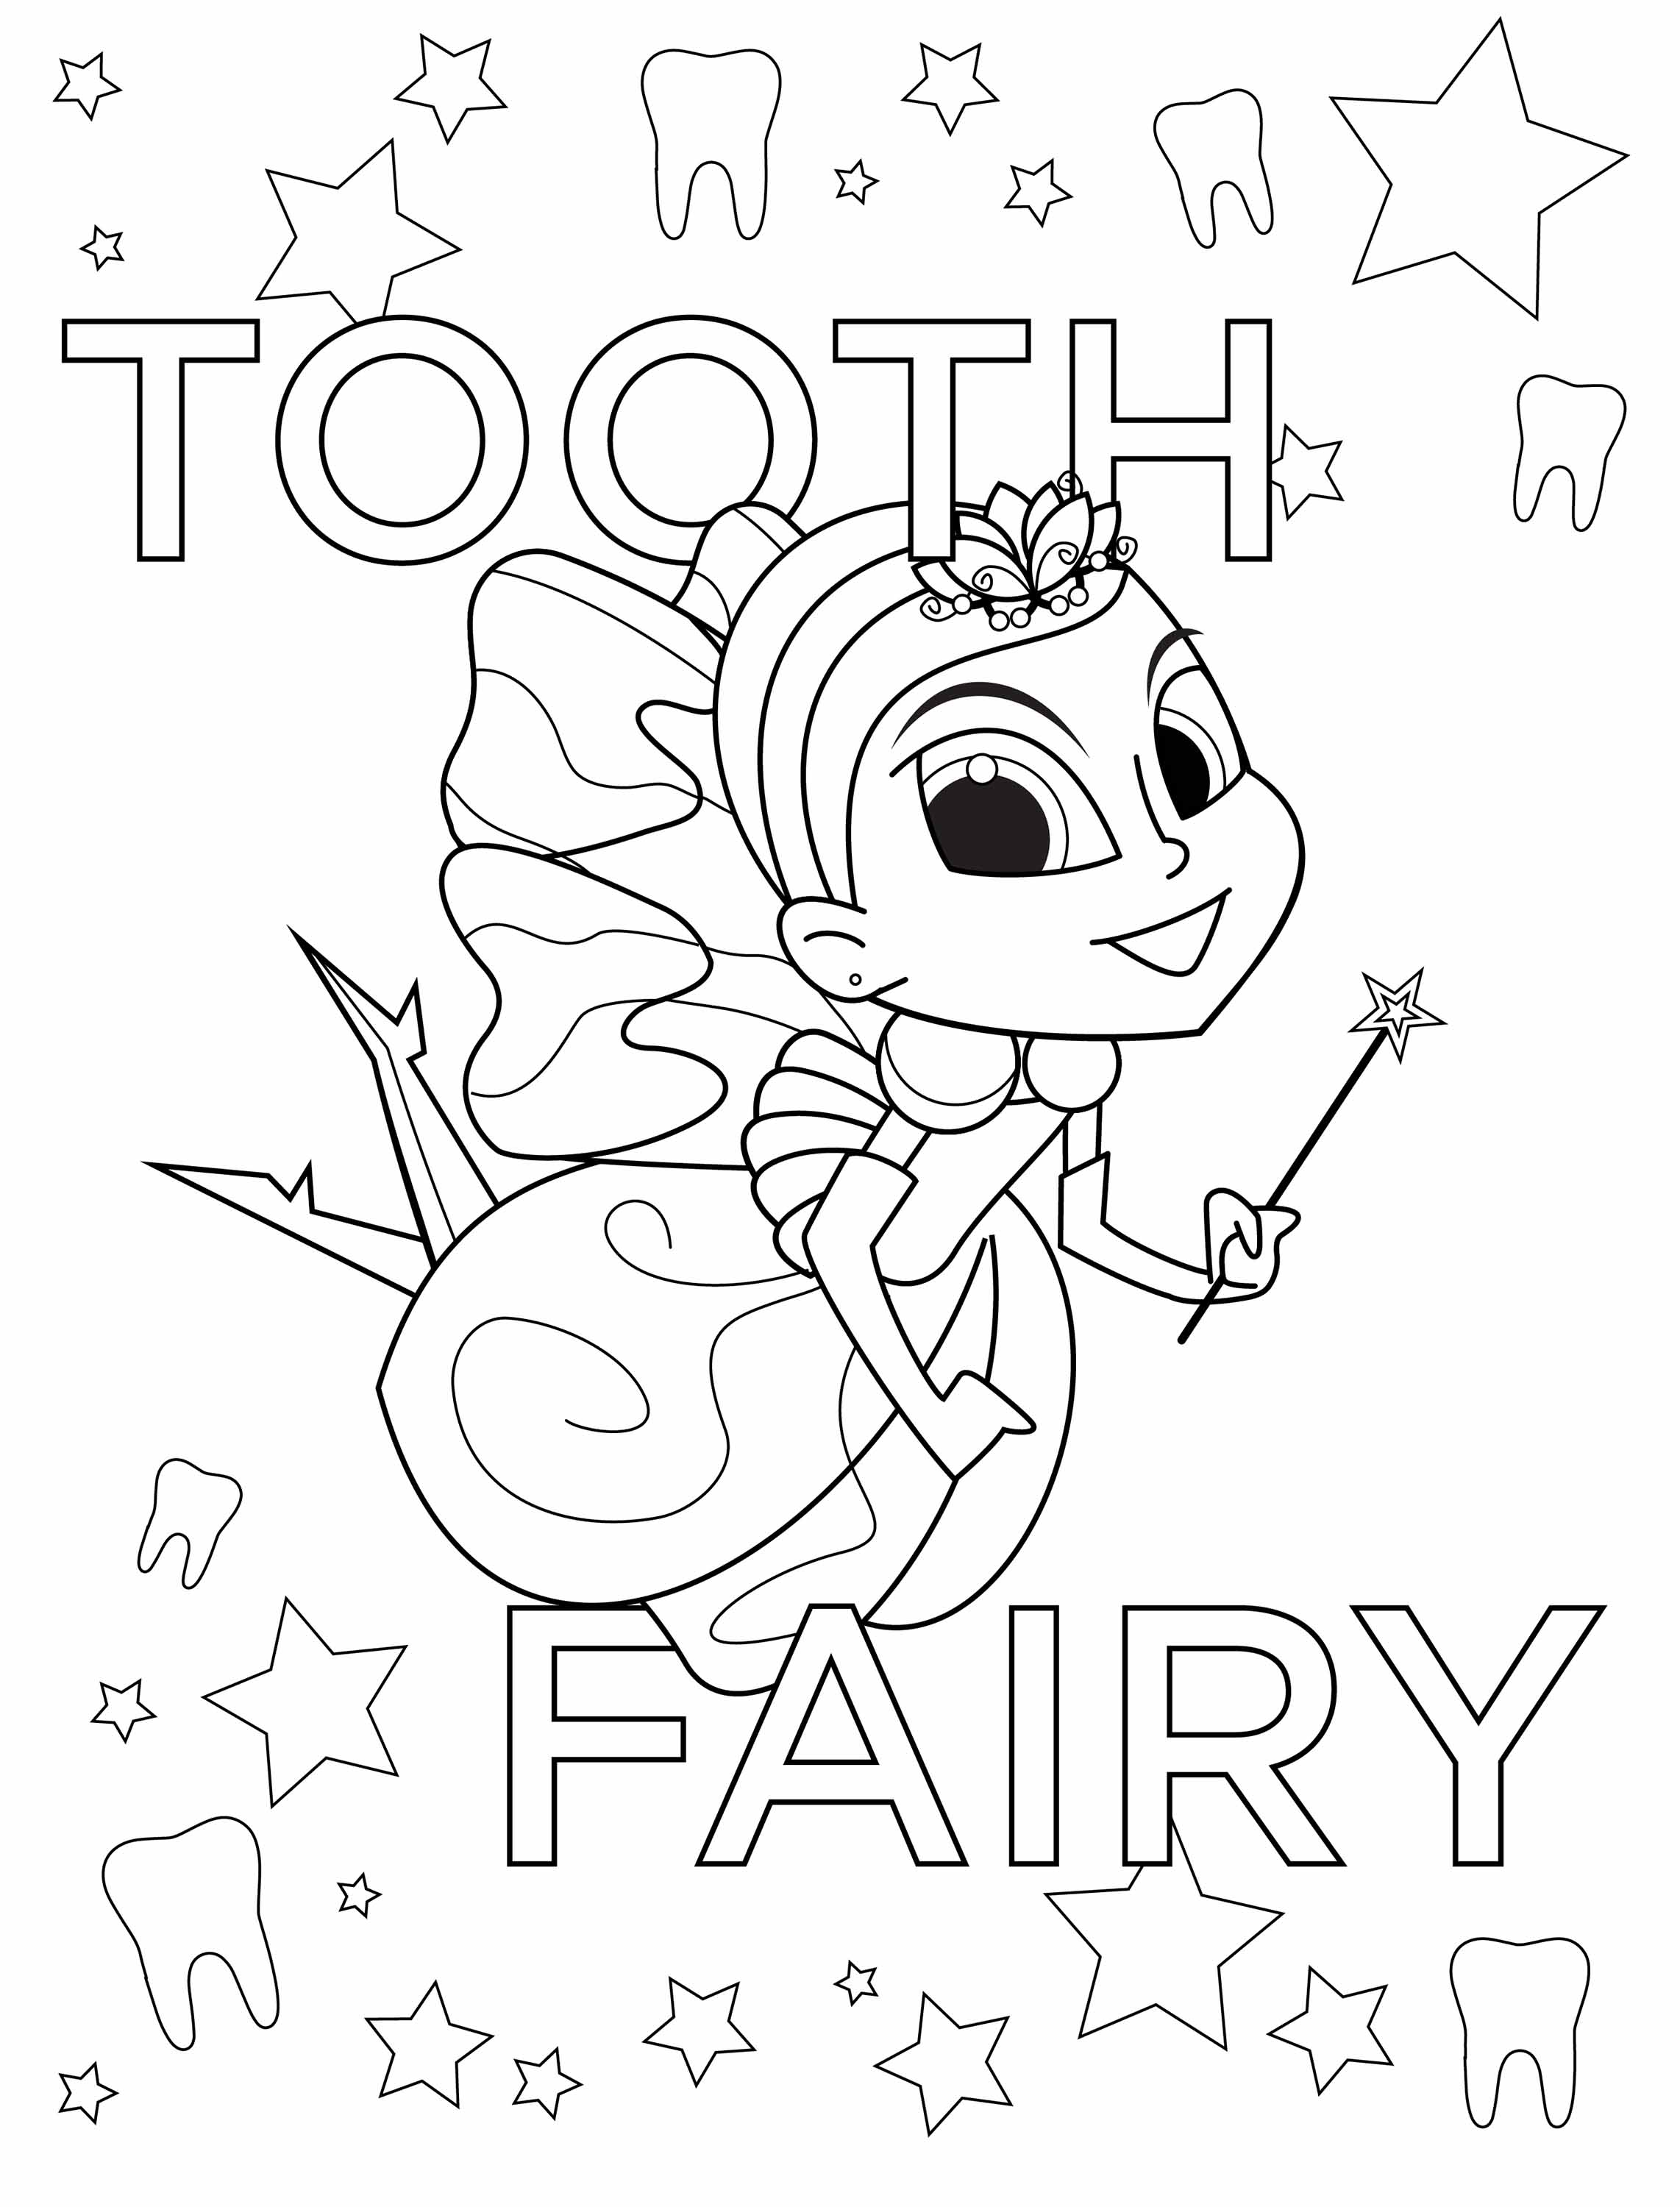 Outstanding Hermey Coloring Sheet 5 Kids Activity Sheets Collection Of Free Easy Printable Coloring Pages About Teeth Collection